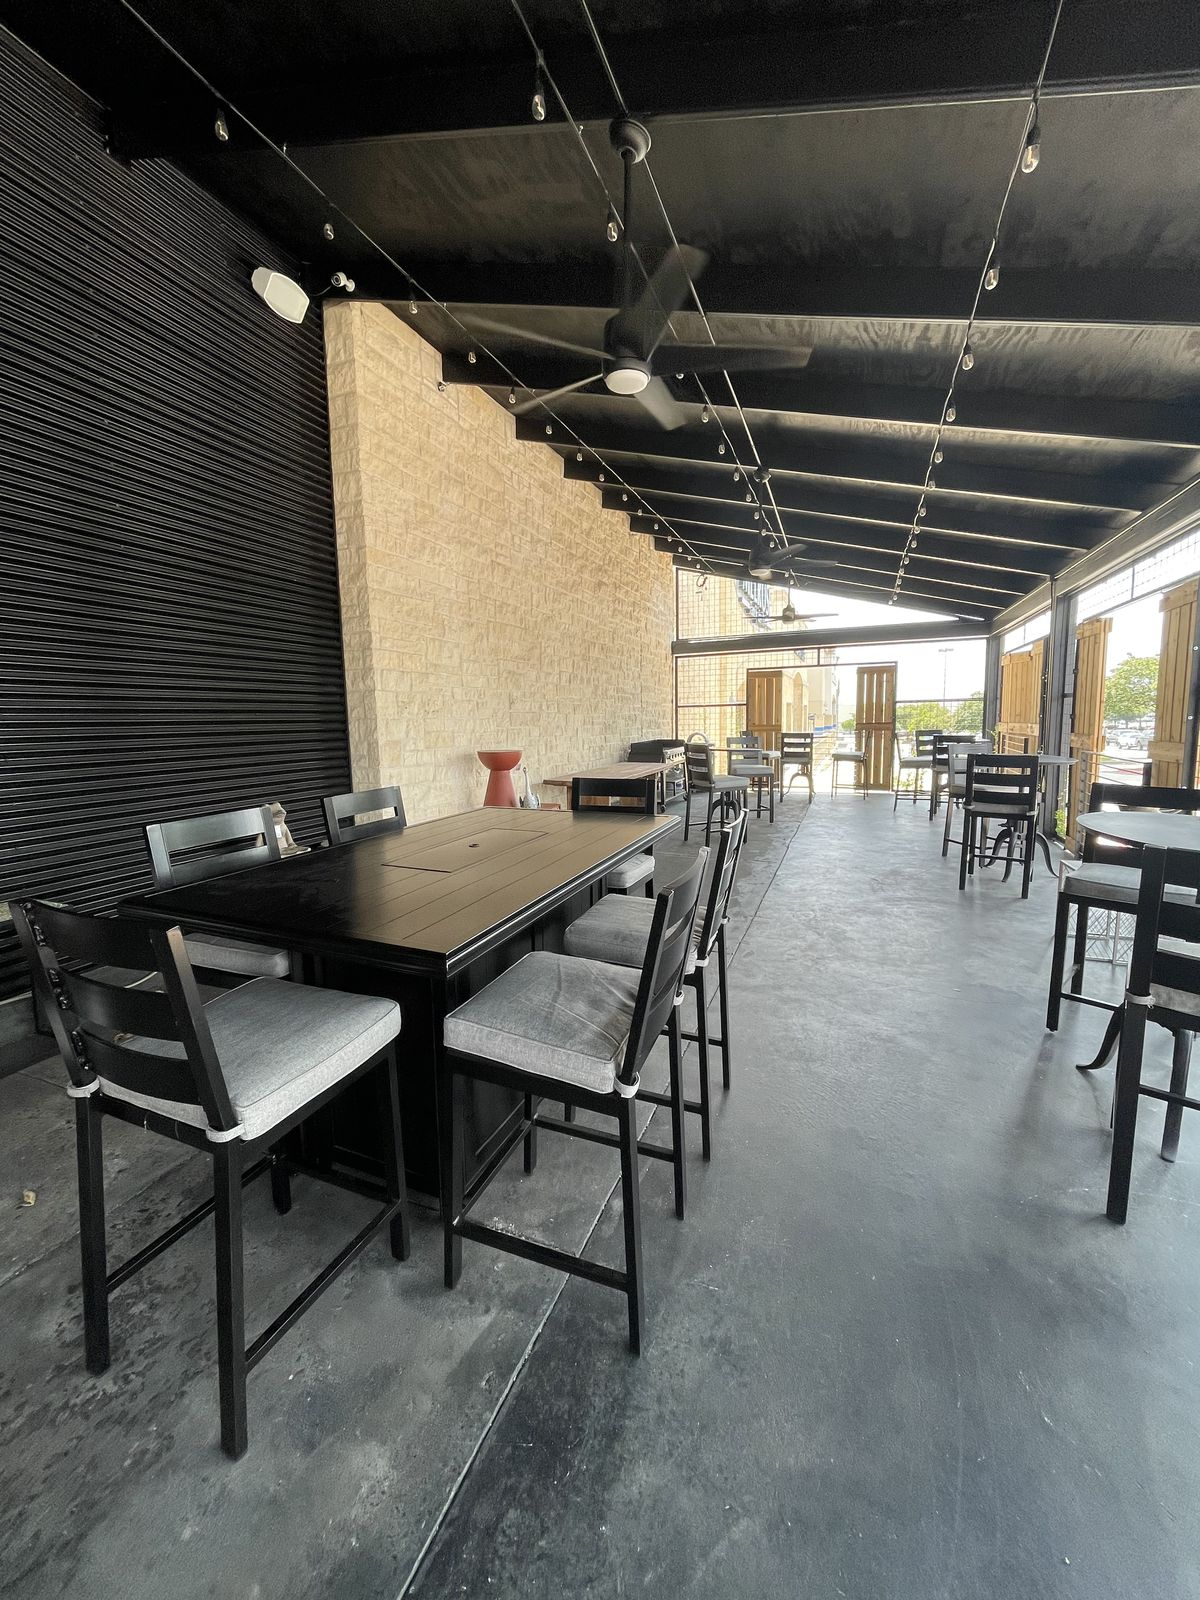 An outdoor dining area with black tables and chairs and a black awning